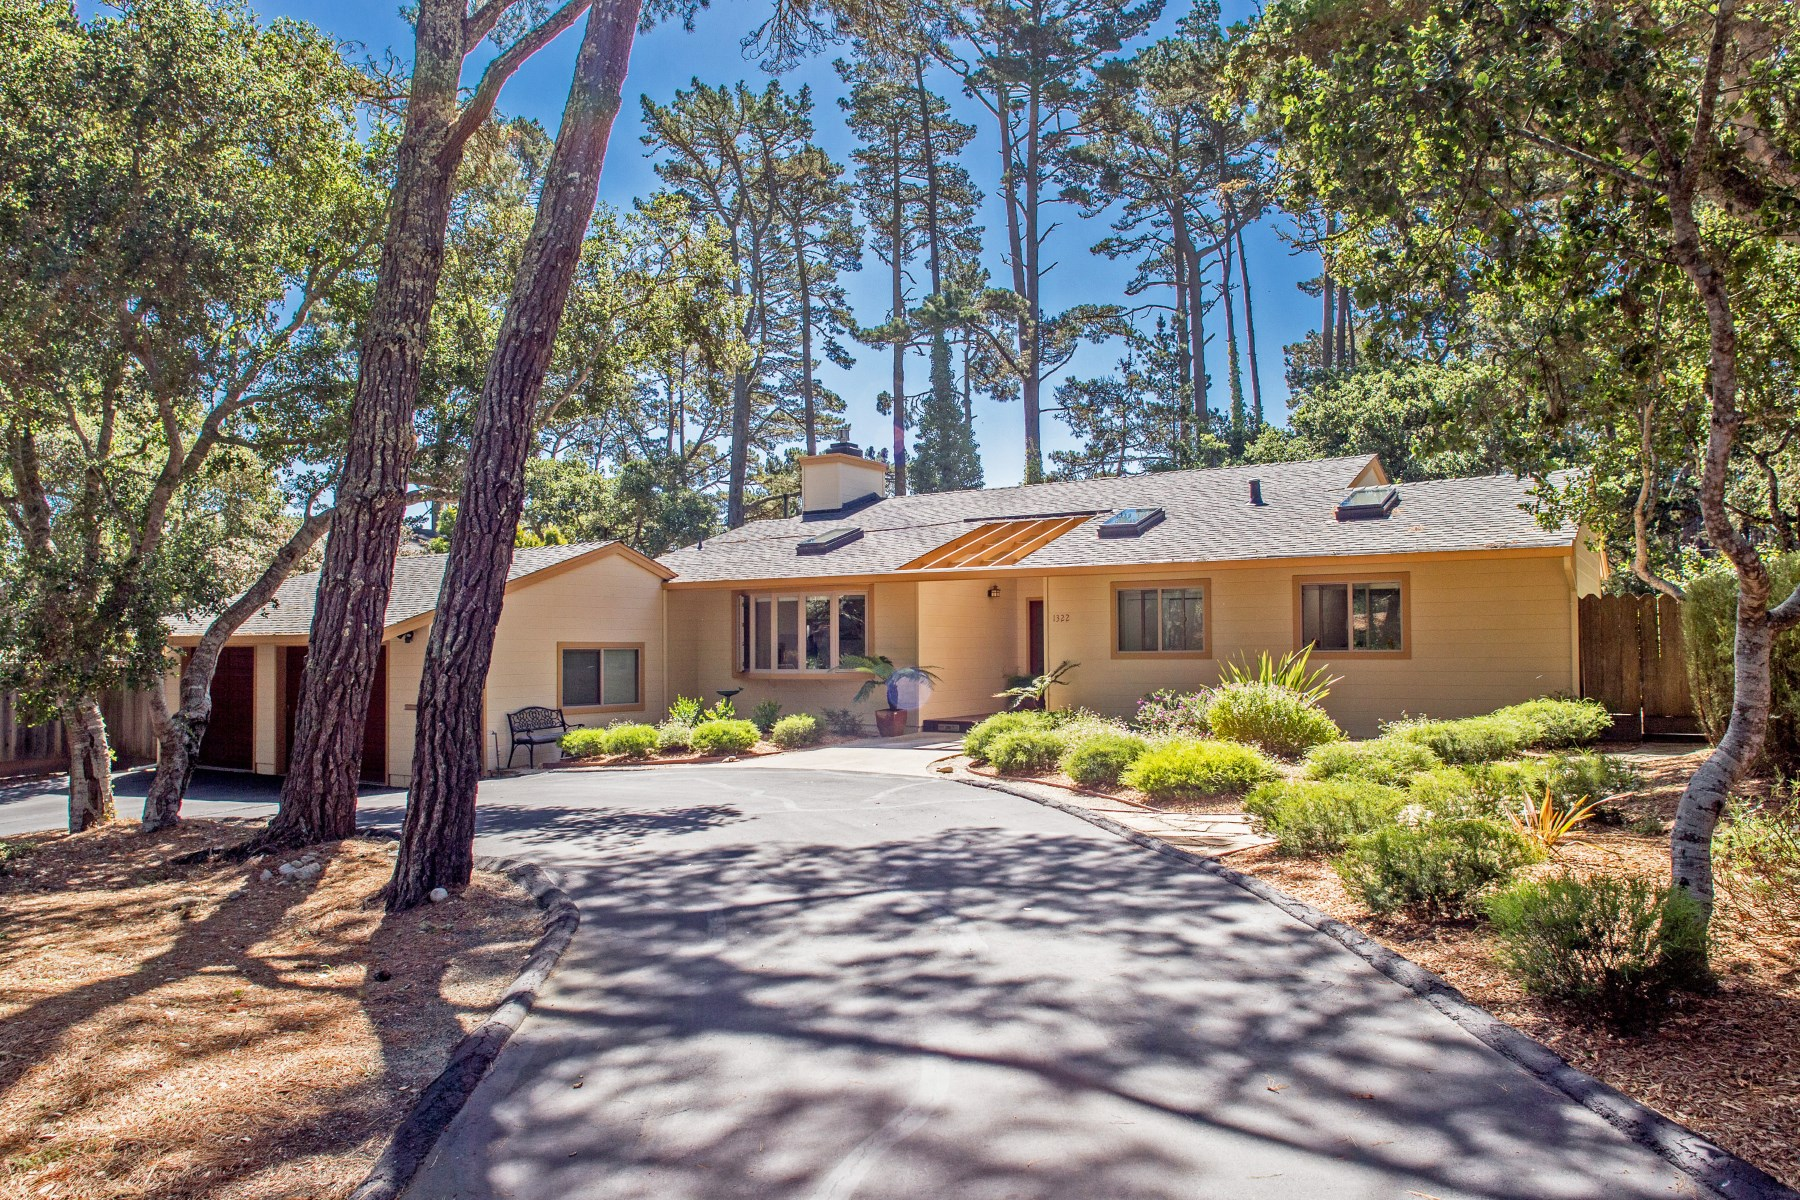 Single Family Home for Sale at Paradise Within Reach in Pebble Beach 1322 Chamisal Way Pebble Beach, California 93953 United States